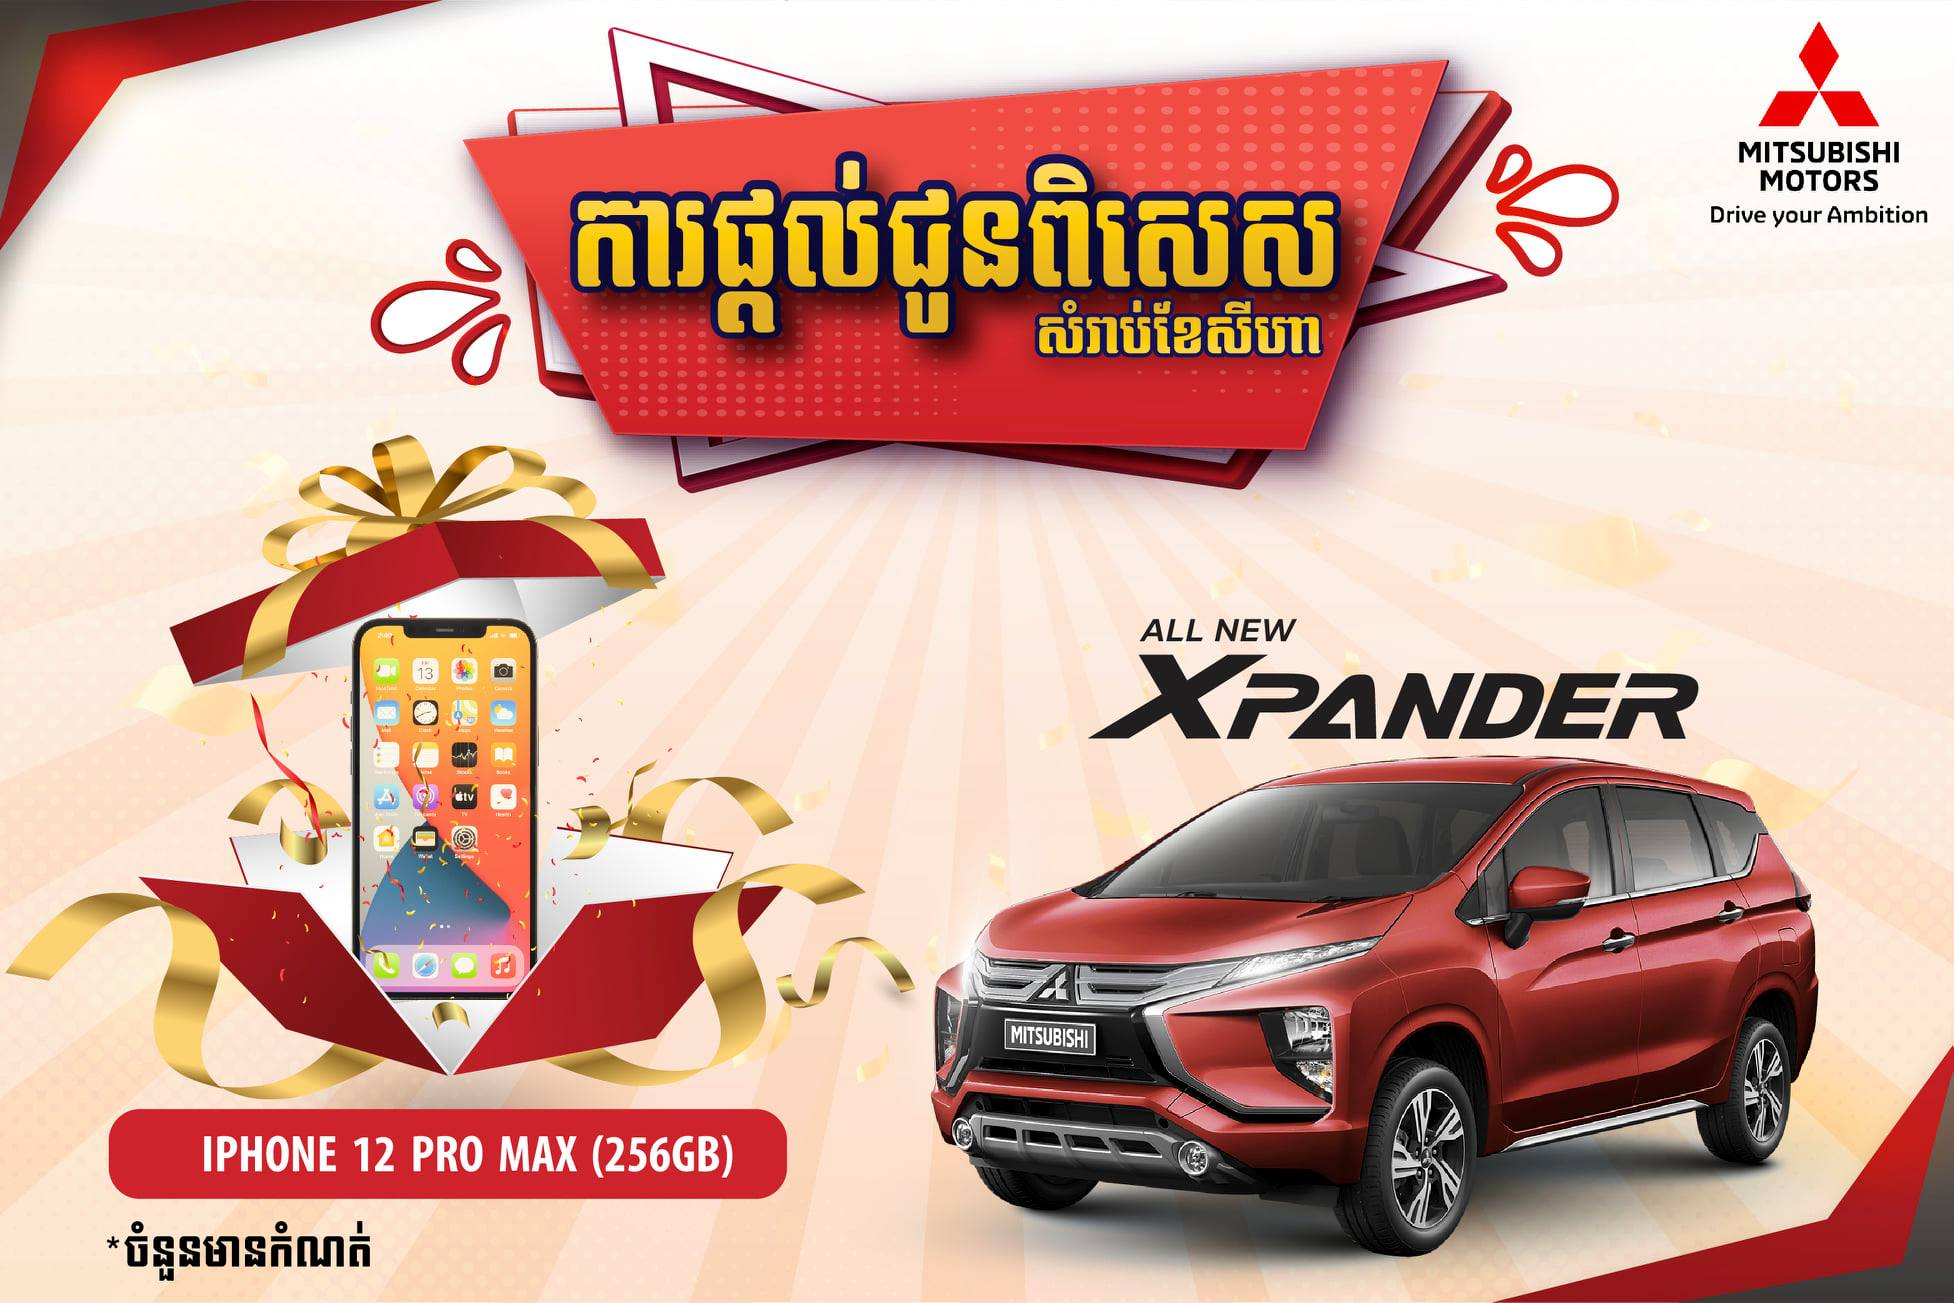 Special Promotion for Mitsubishi Xpander